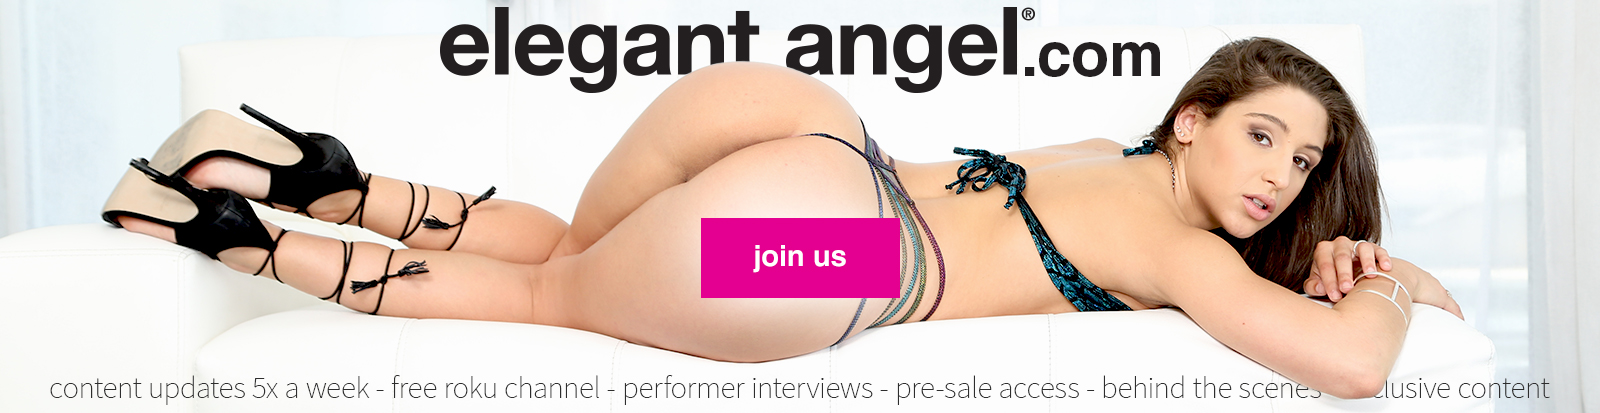 Welcome to the Elegant Angel Store official on Demand theatre and store.